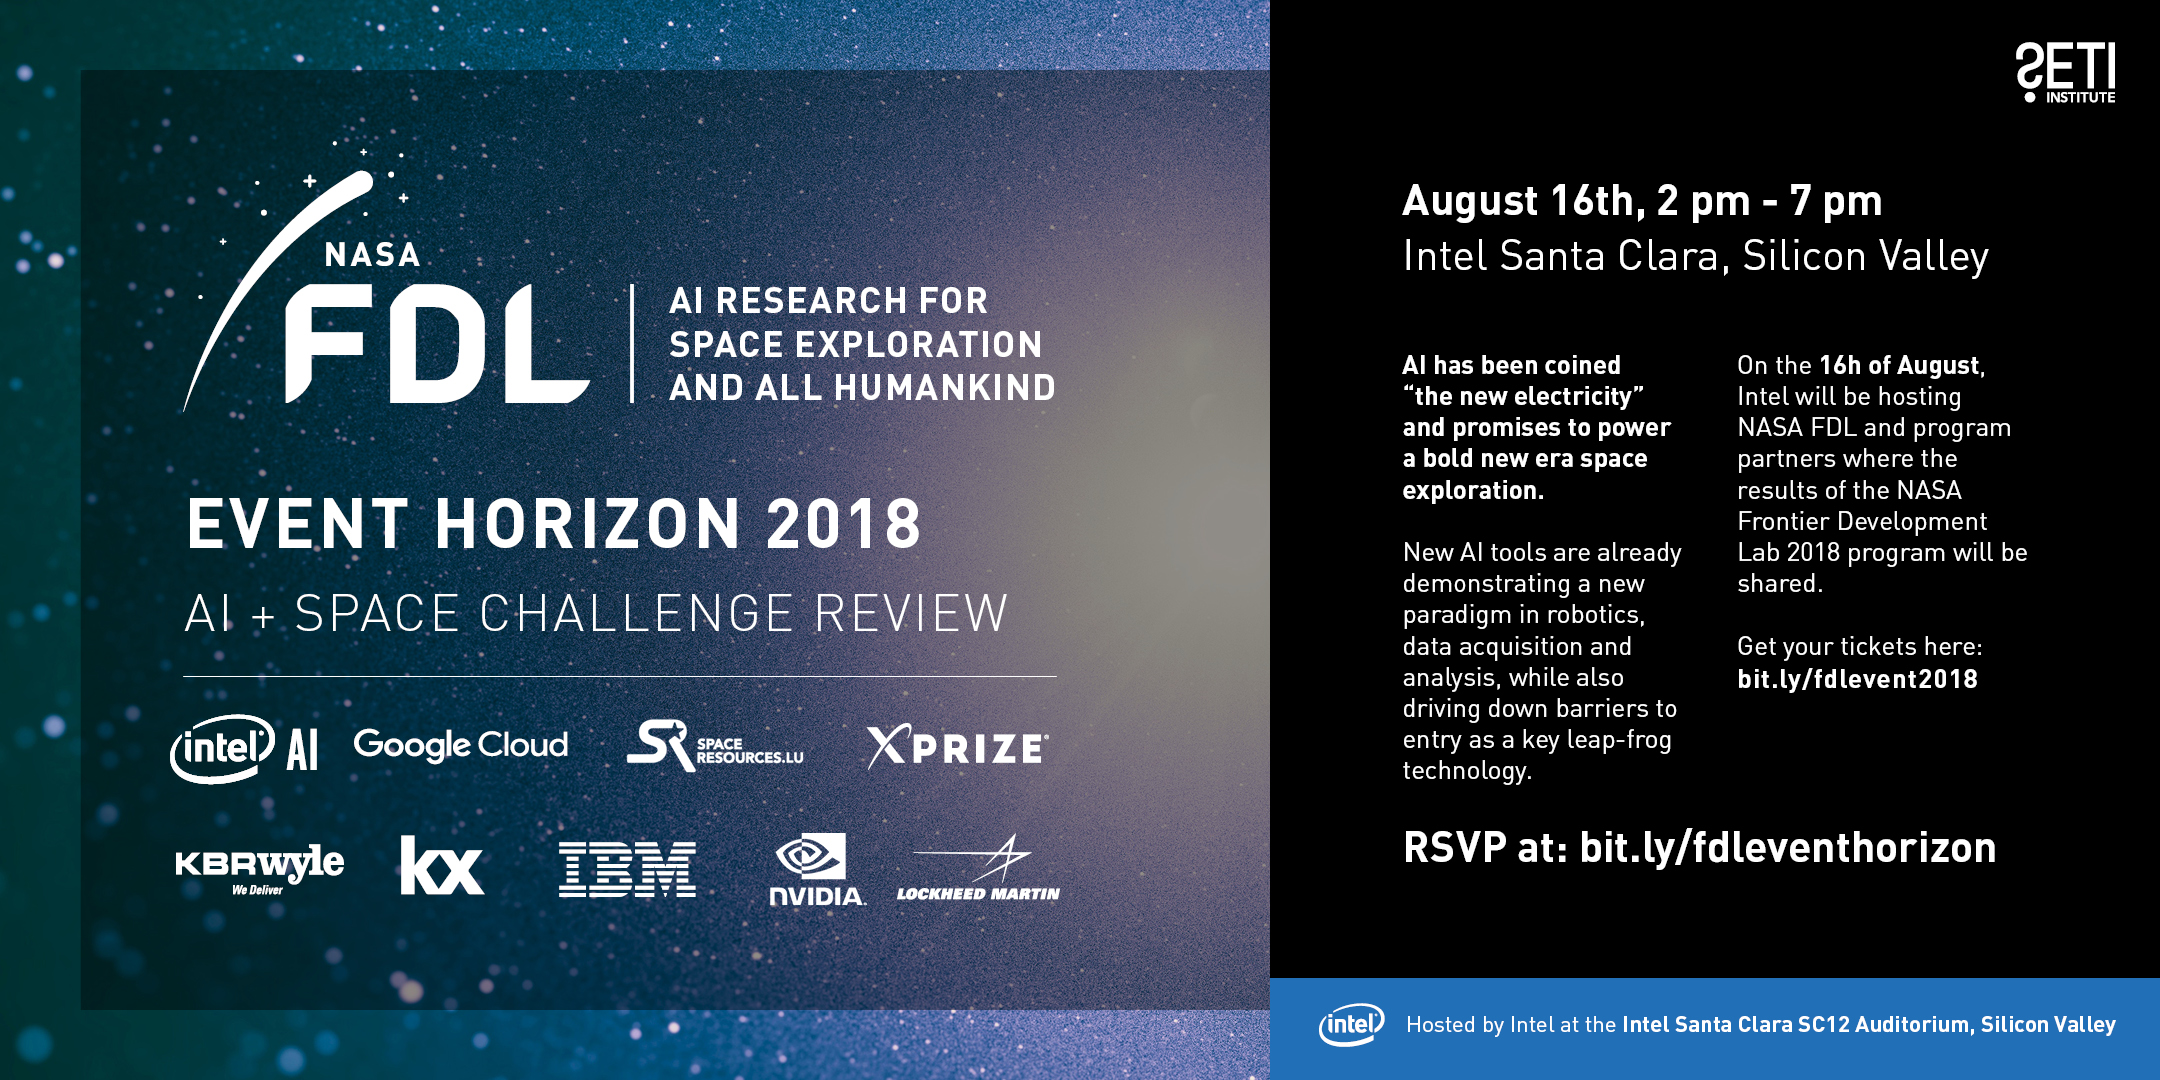 NASA FDL Event Horizon 2018 AI and Space Challenge Review